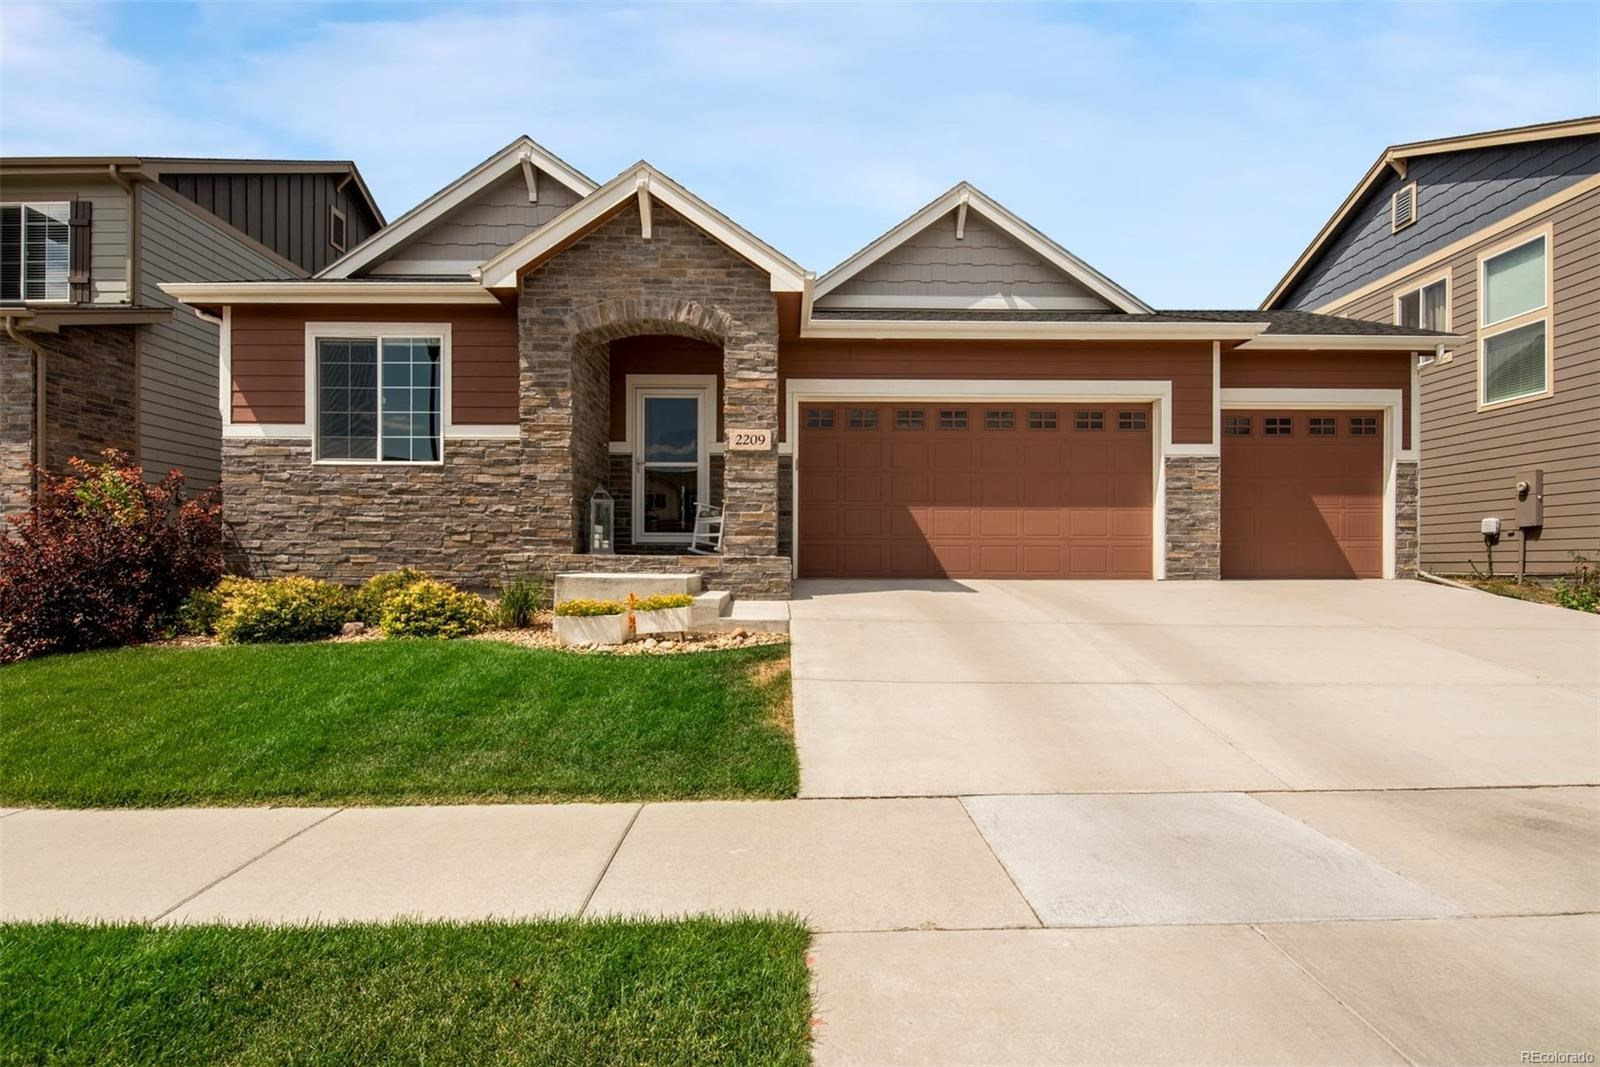 MLS# 7603789 - 1 - 2209 Adobe Drive, Fort Collins, CO 80525